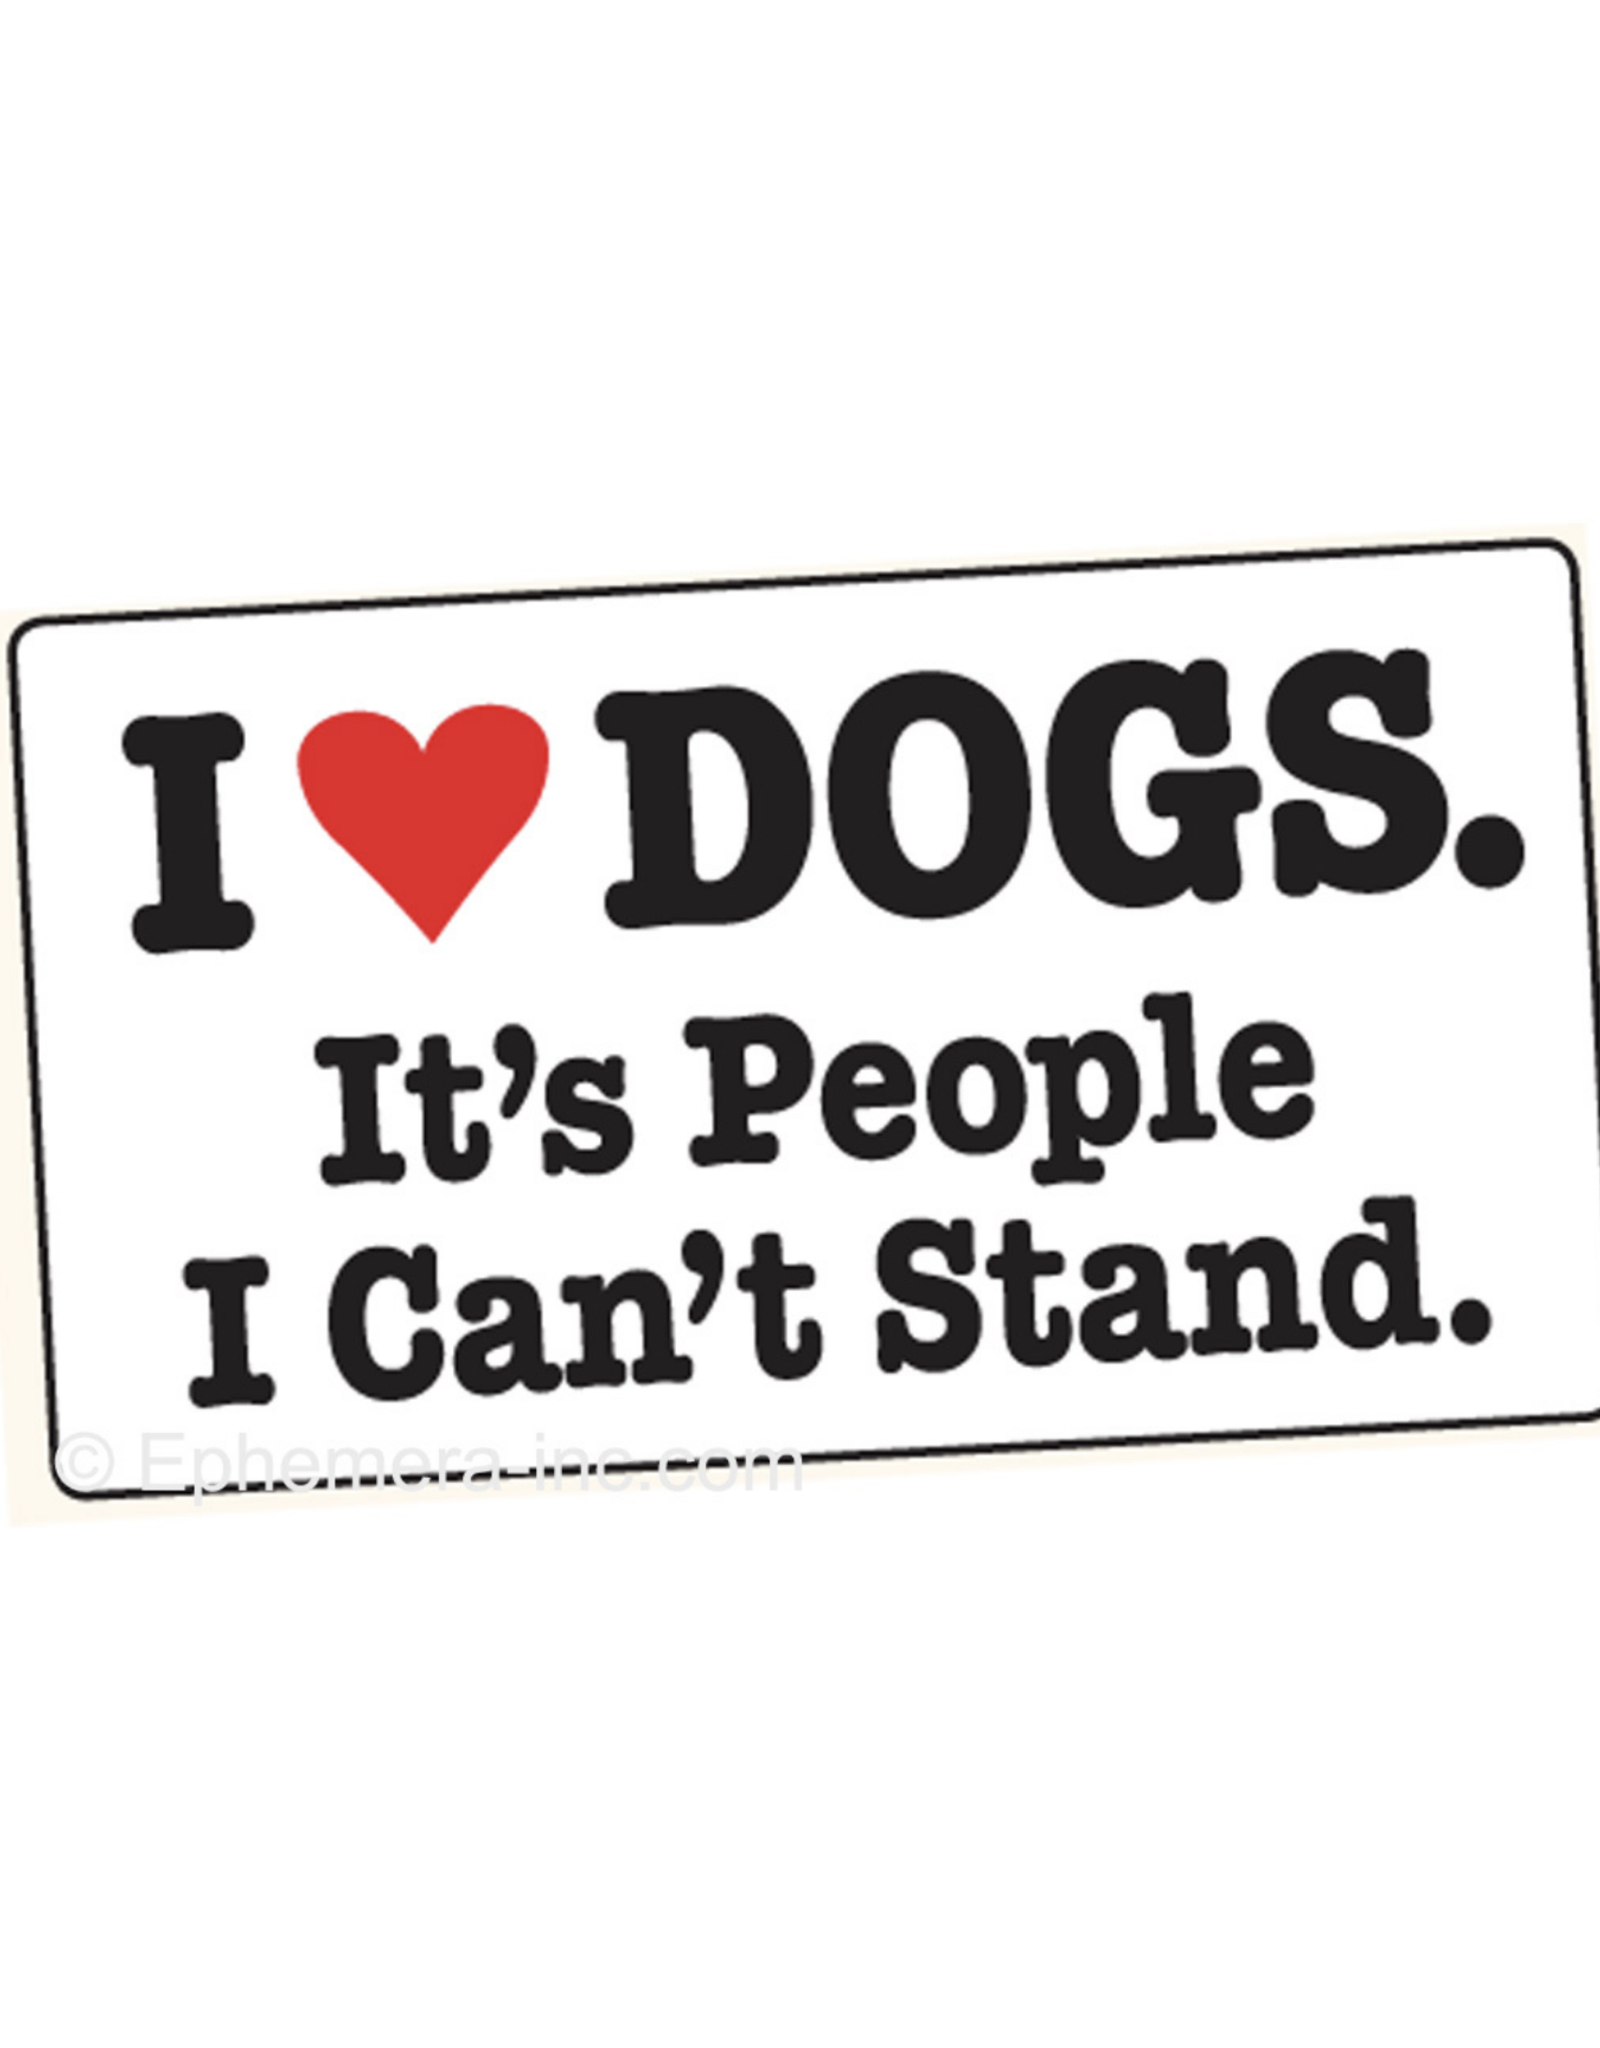 I (heart) Dogs. It's People I Can't Stand.